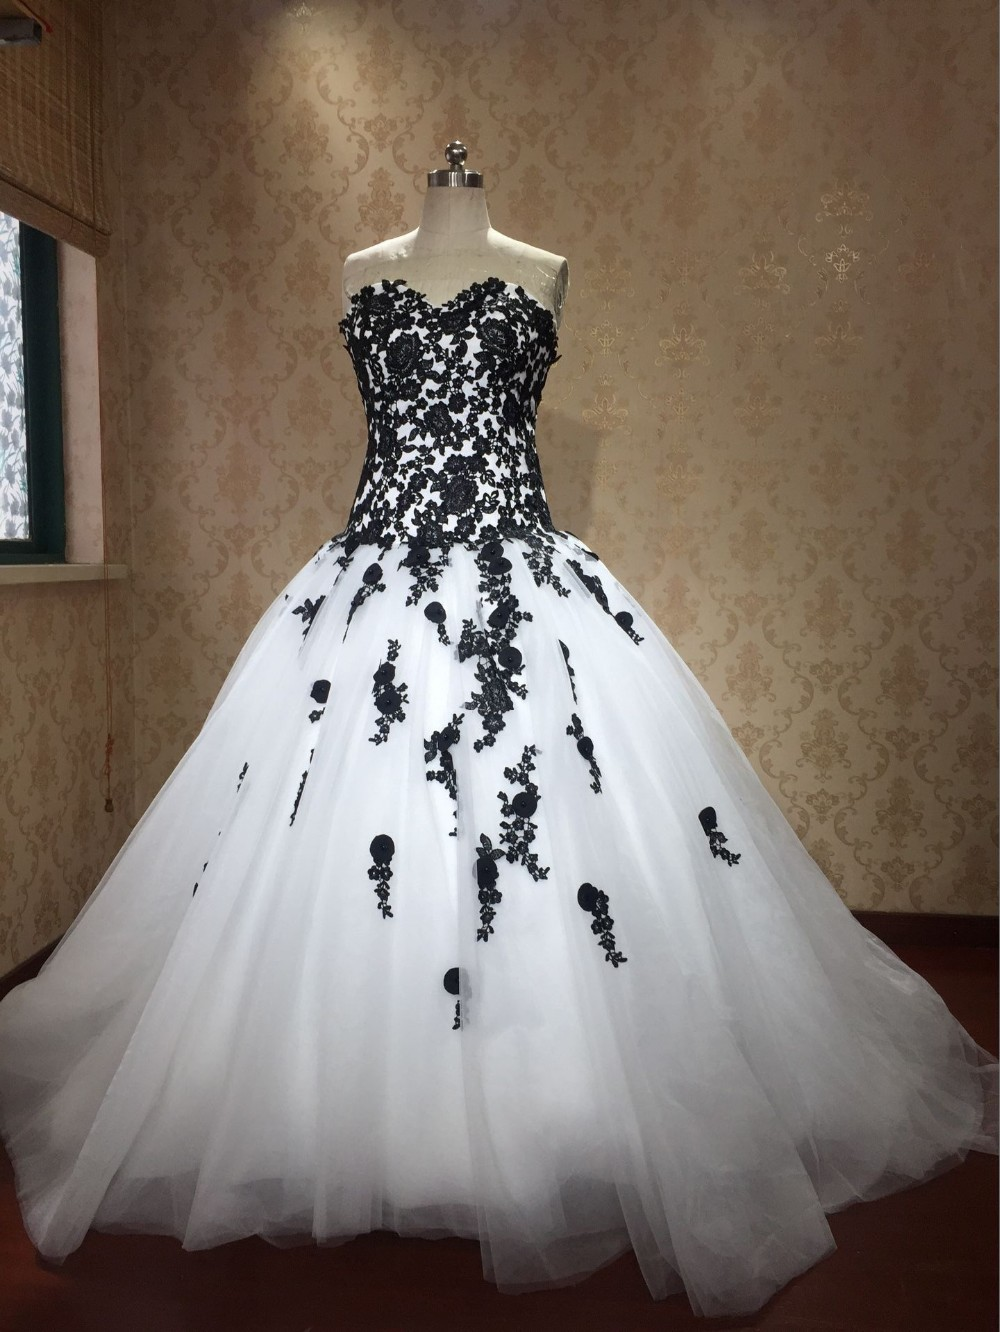 2017 black and white ball gowns gothic wedding dresses for Black and white lace wedding dresses